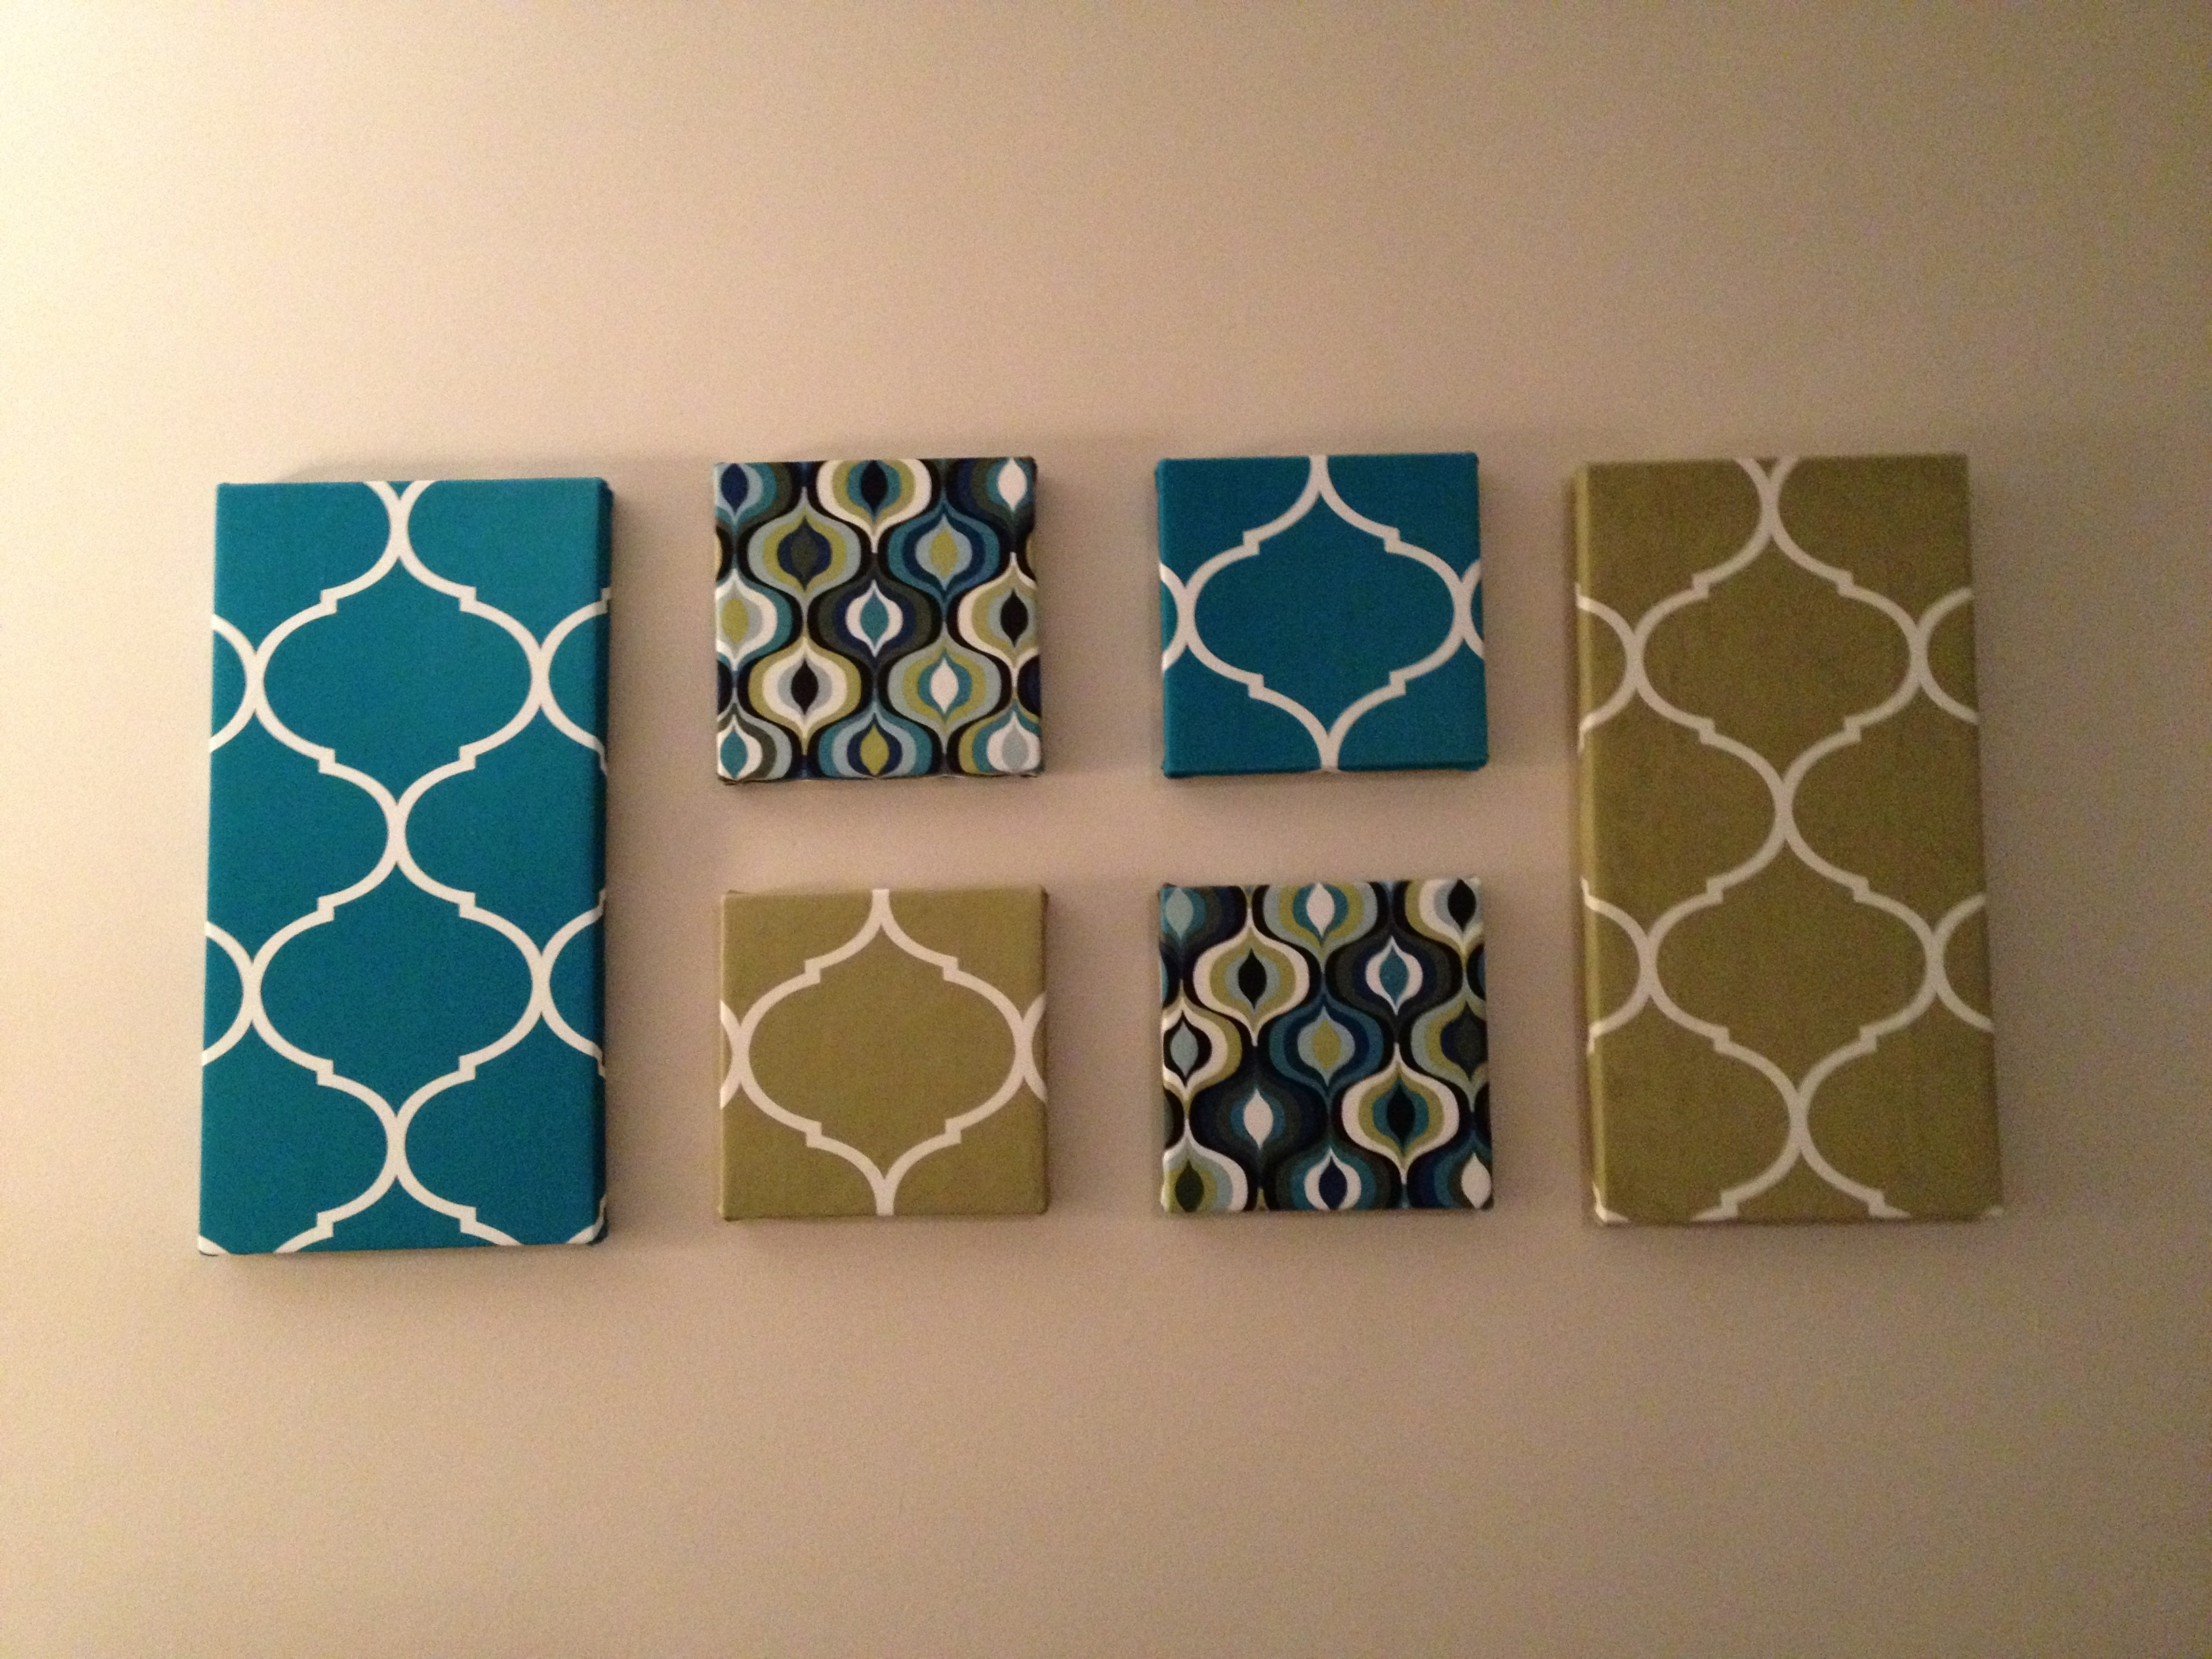 Candy And Her Cupcakes Throughout Fabric Canvas Wall Art (View 4 of 15)